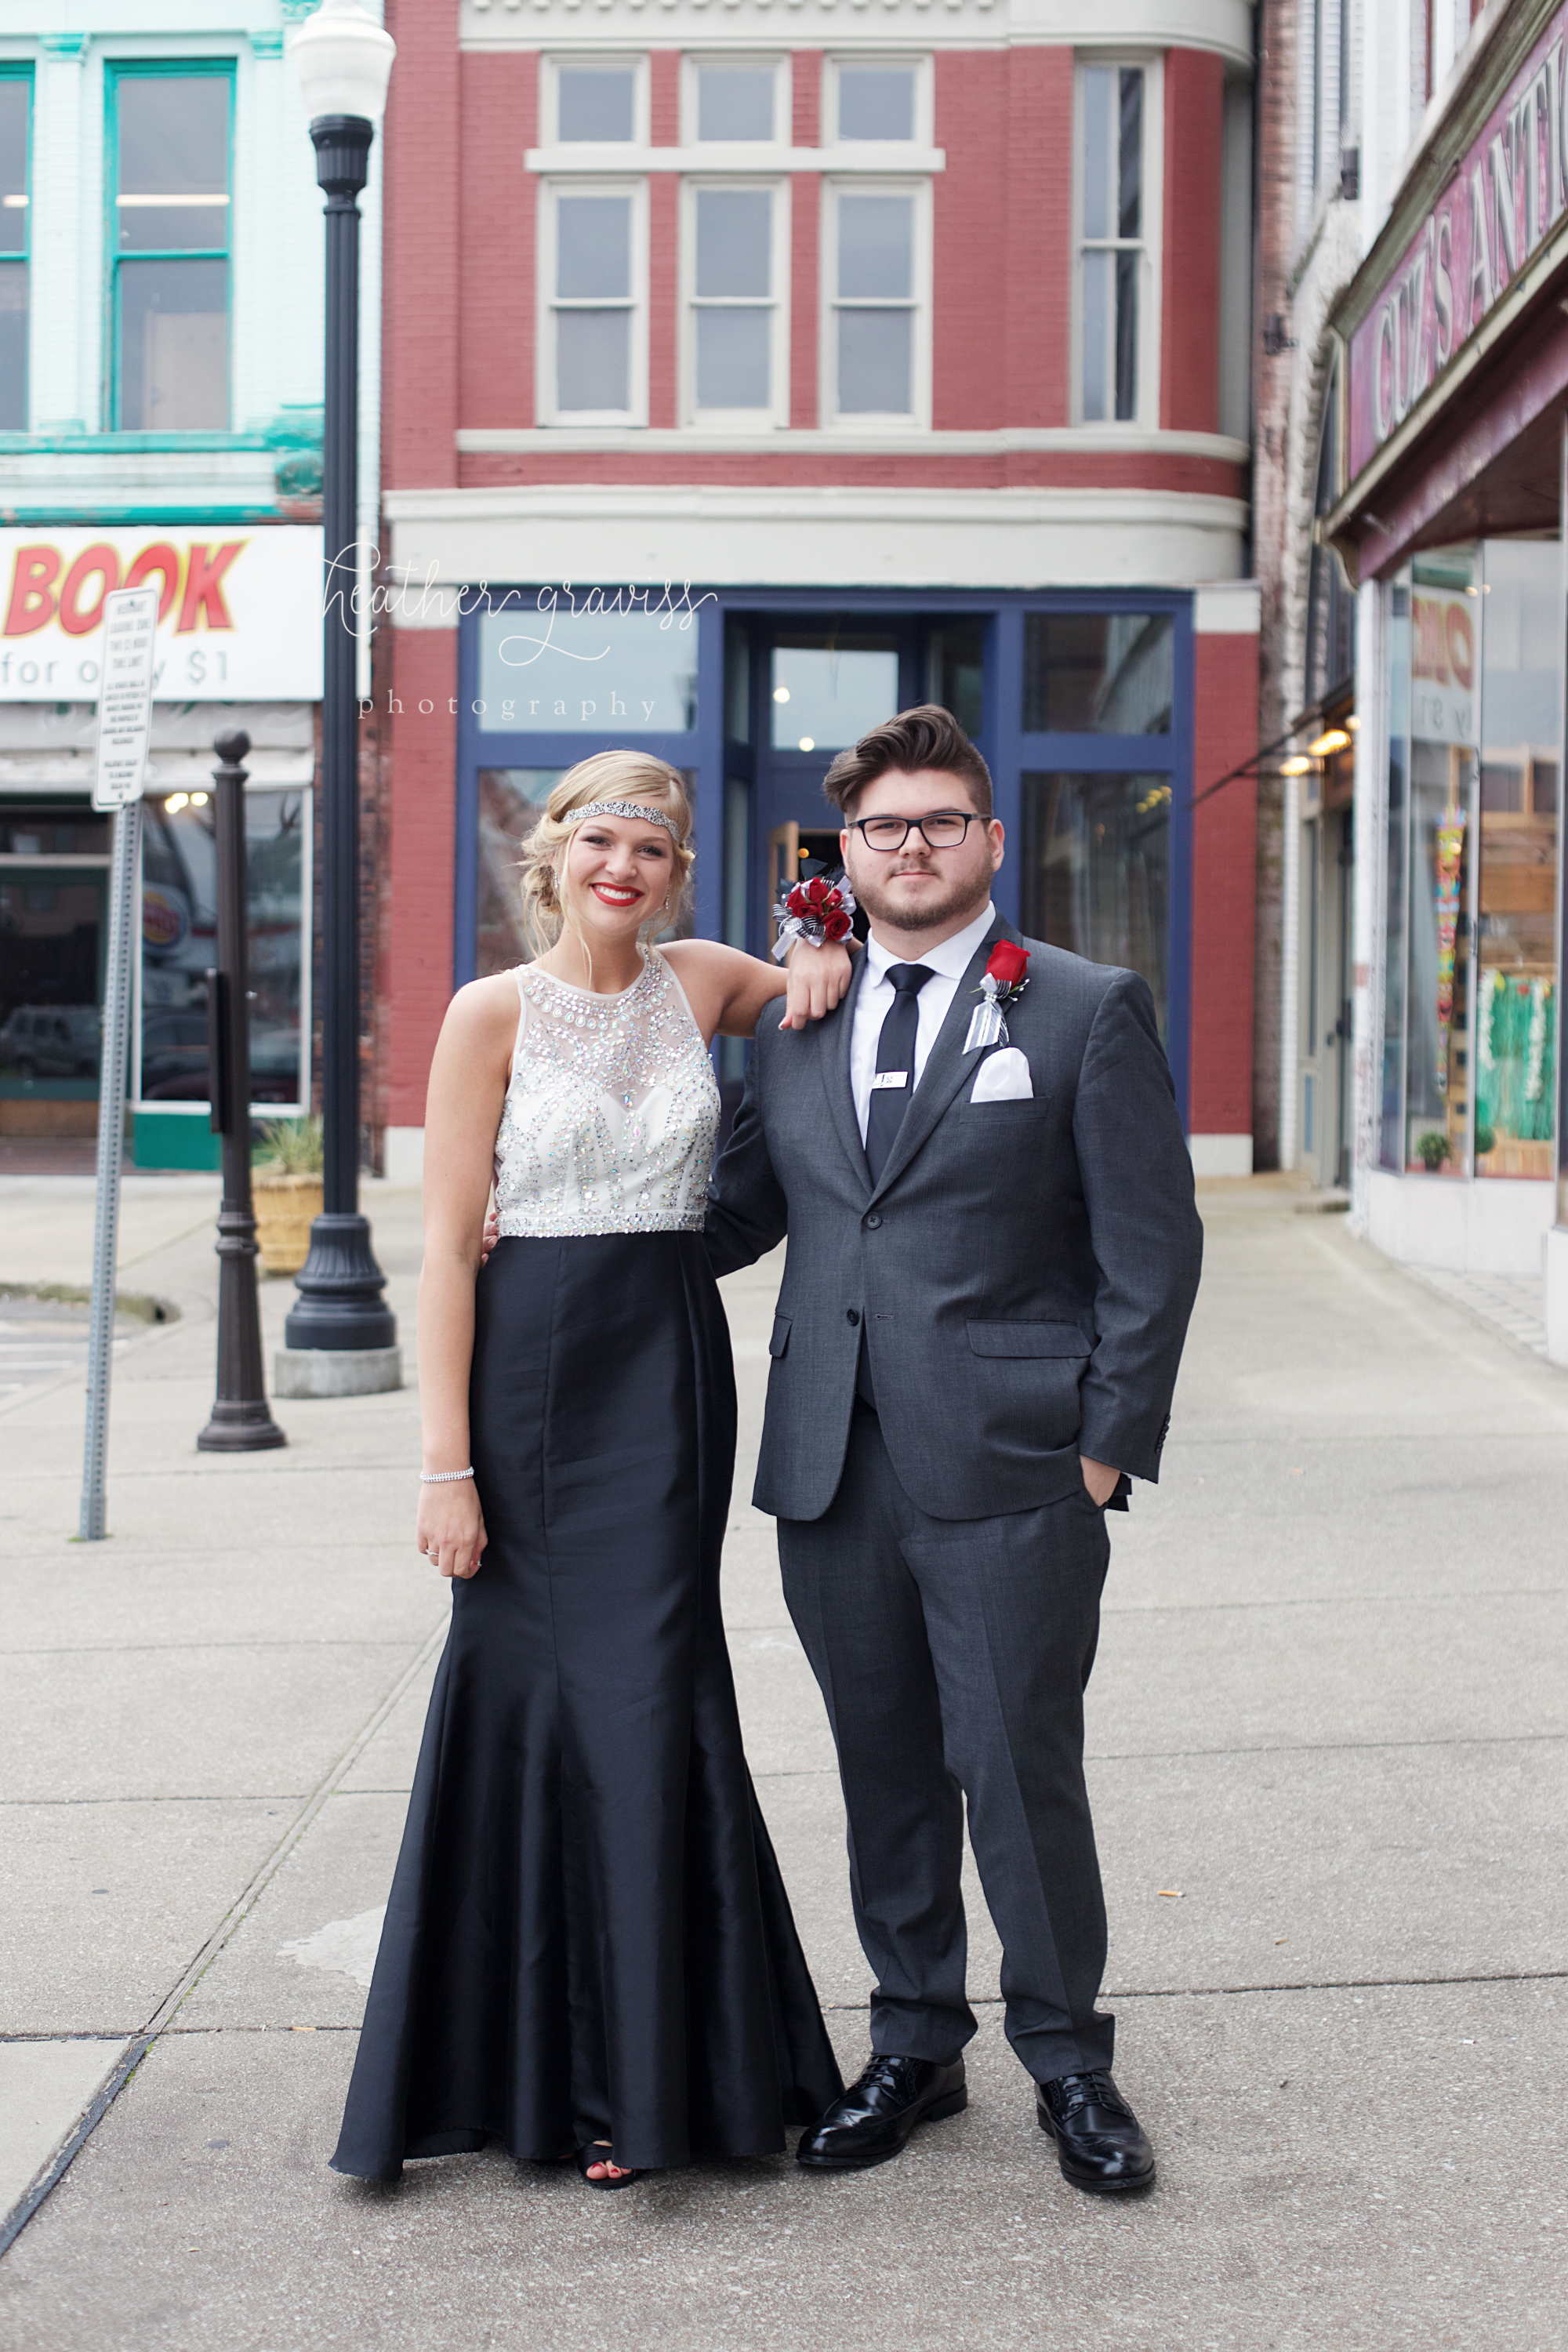 prom-in-the-city.jpg